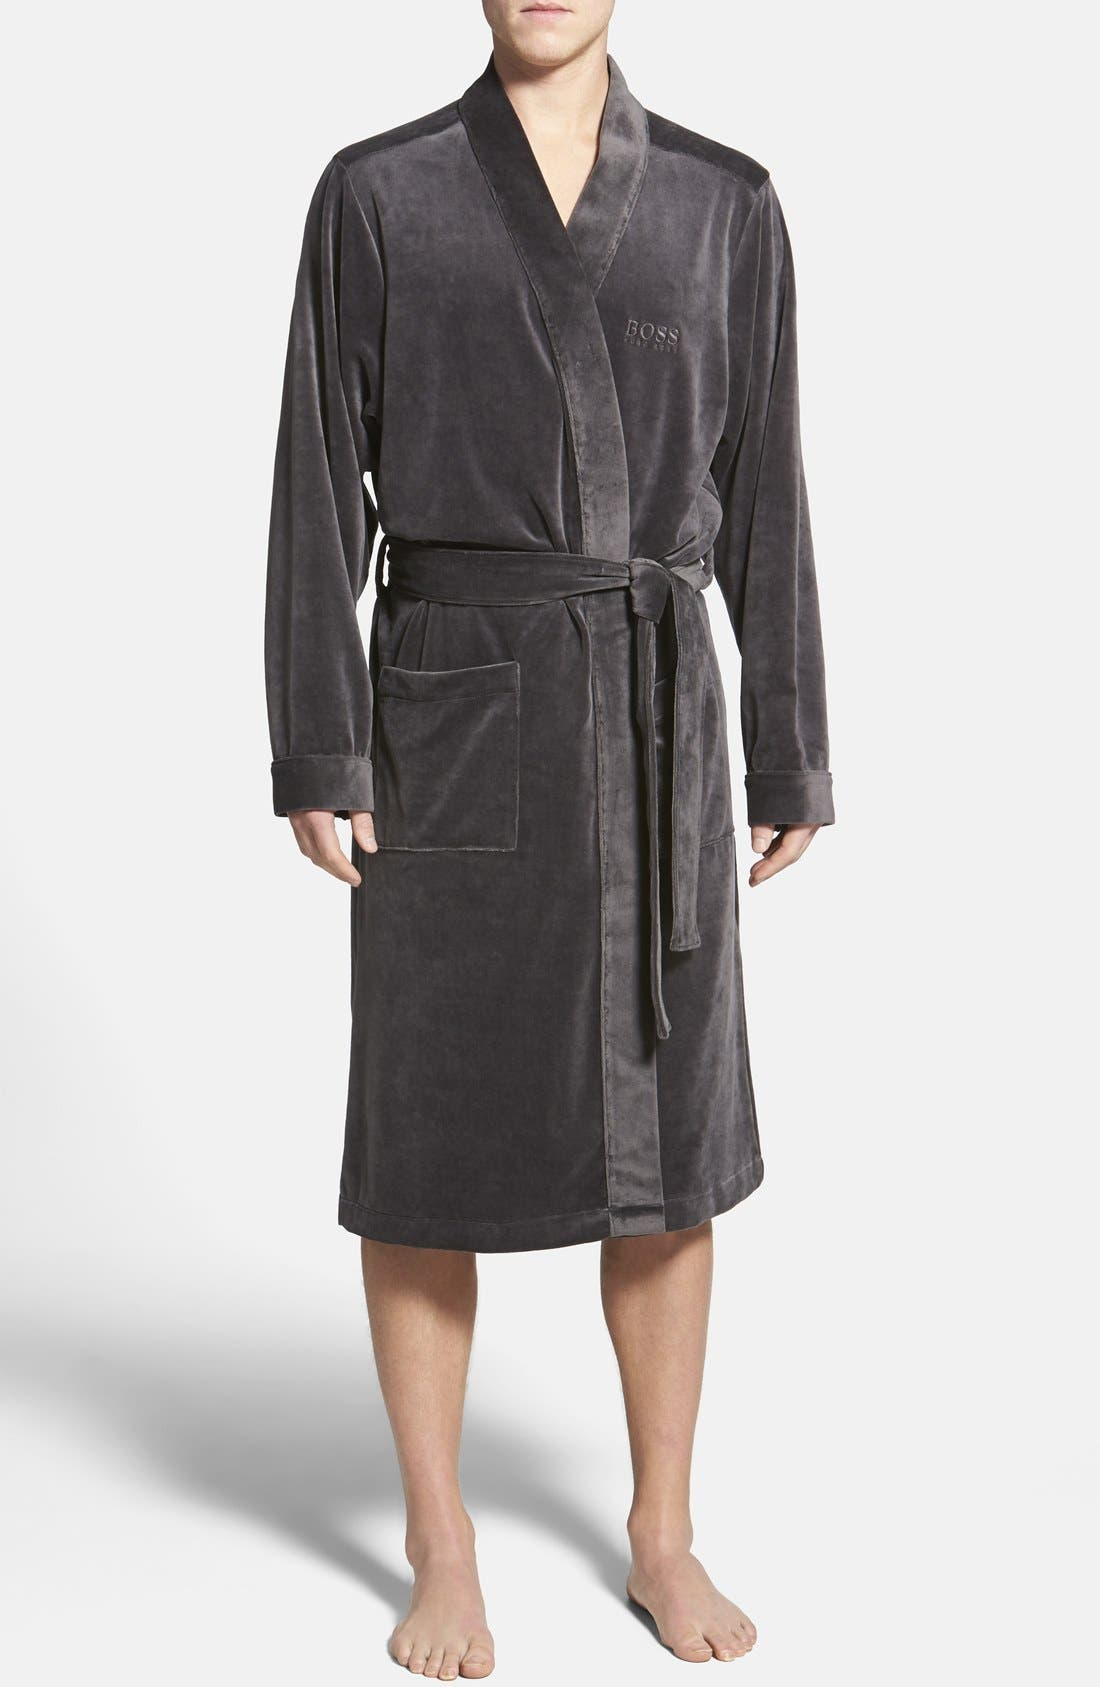 BOSS,                             HUGO BOSS Velour Robe,                             Main thumbnail 1, color,                             030